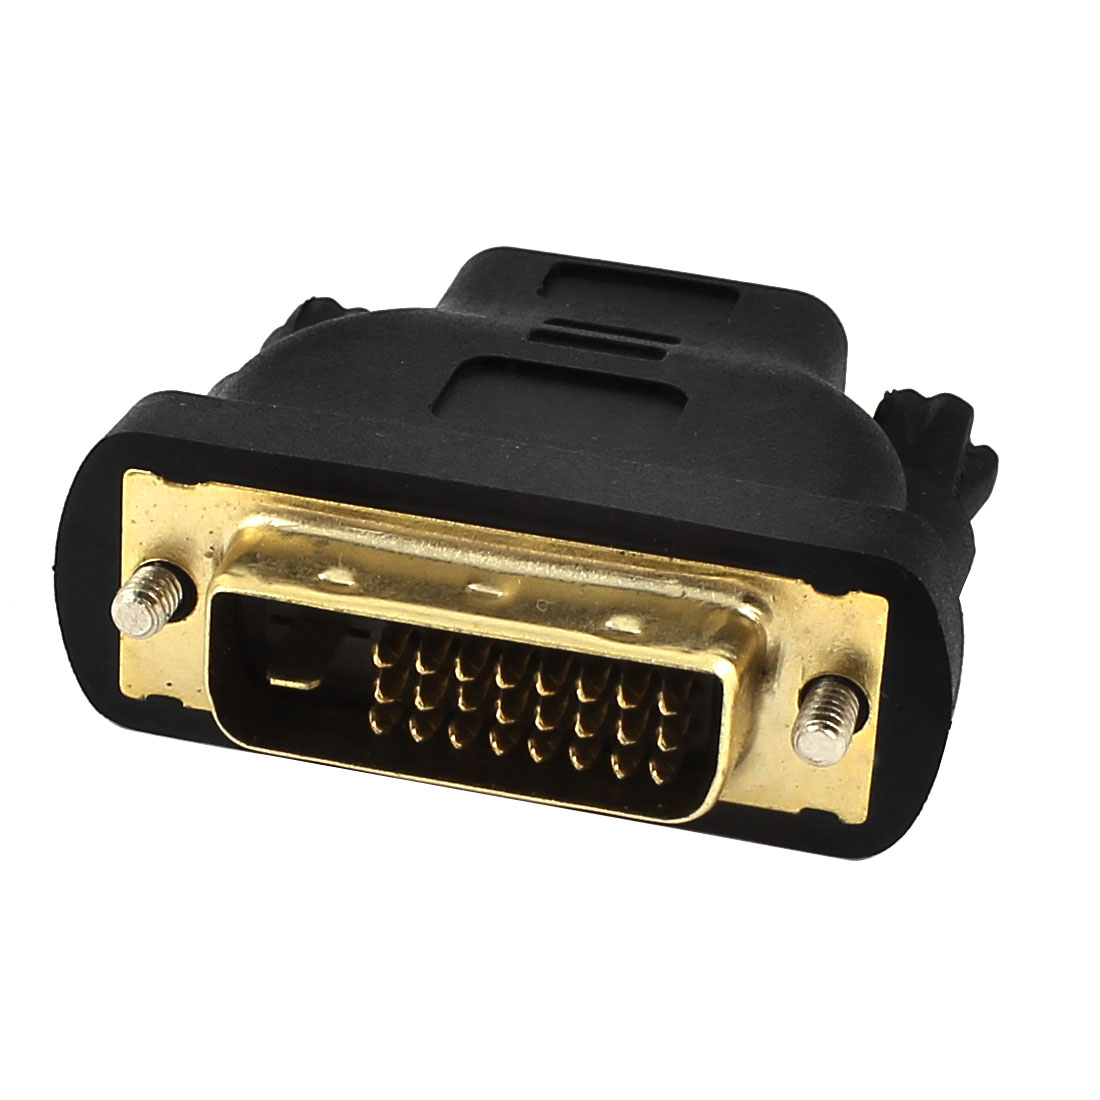 DVI-D Dual Link 24+1 Male to HDMI 19 Pin Female Jack Adapter Connector Black